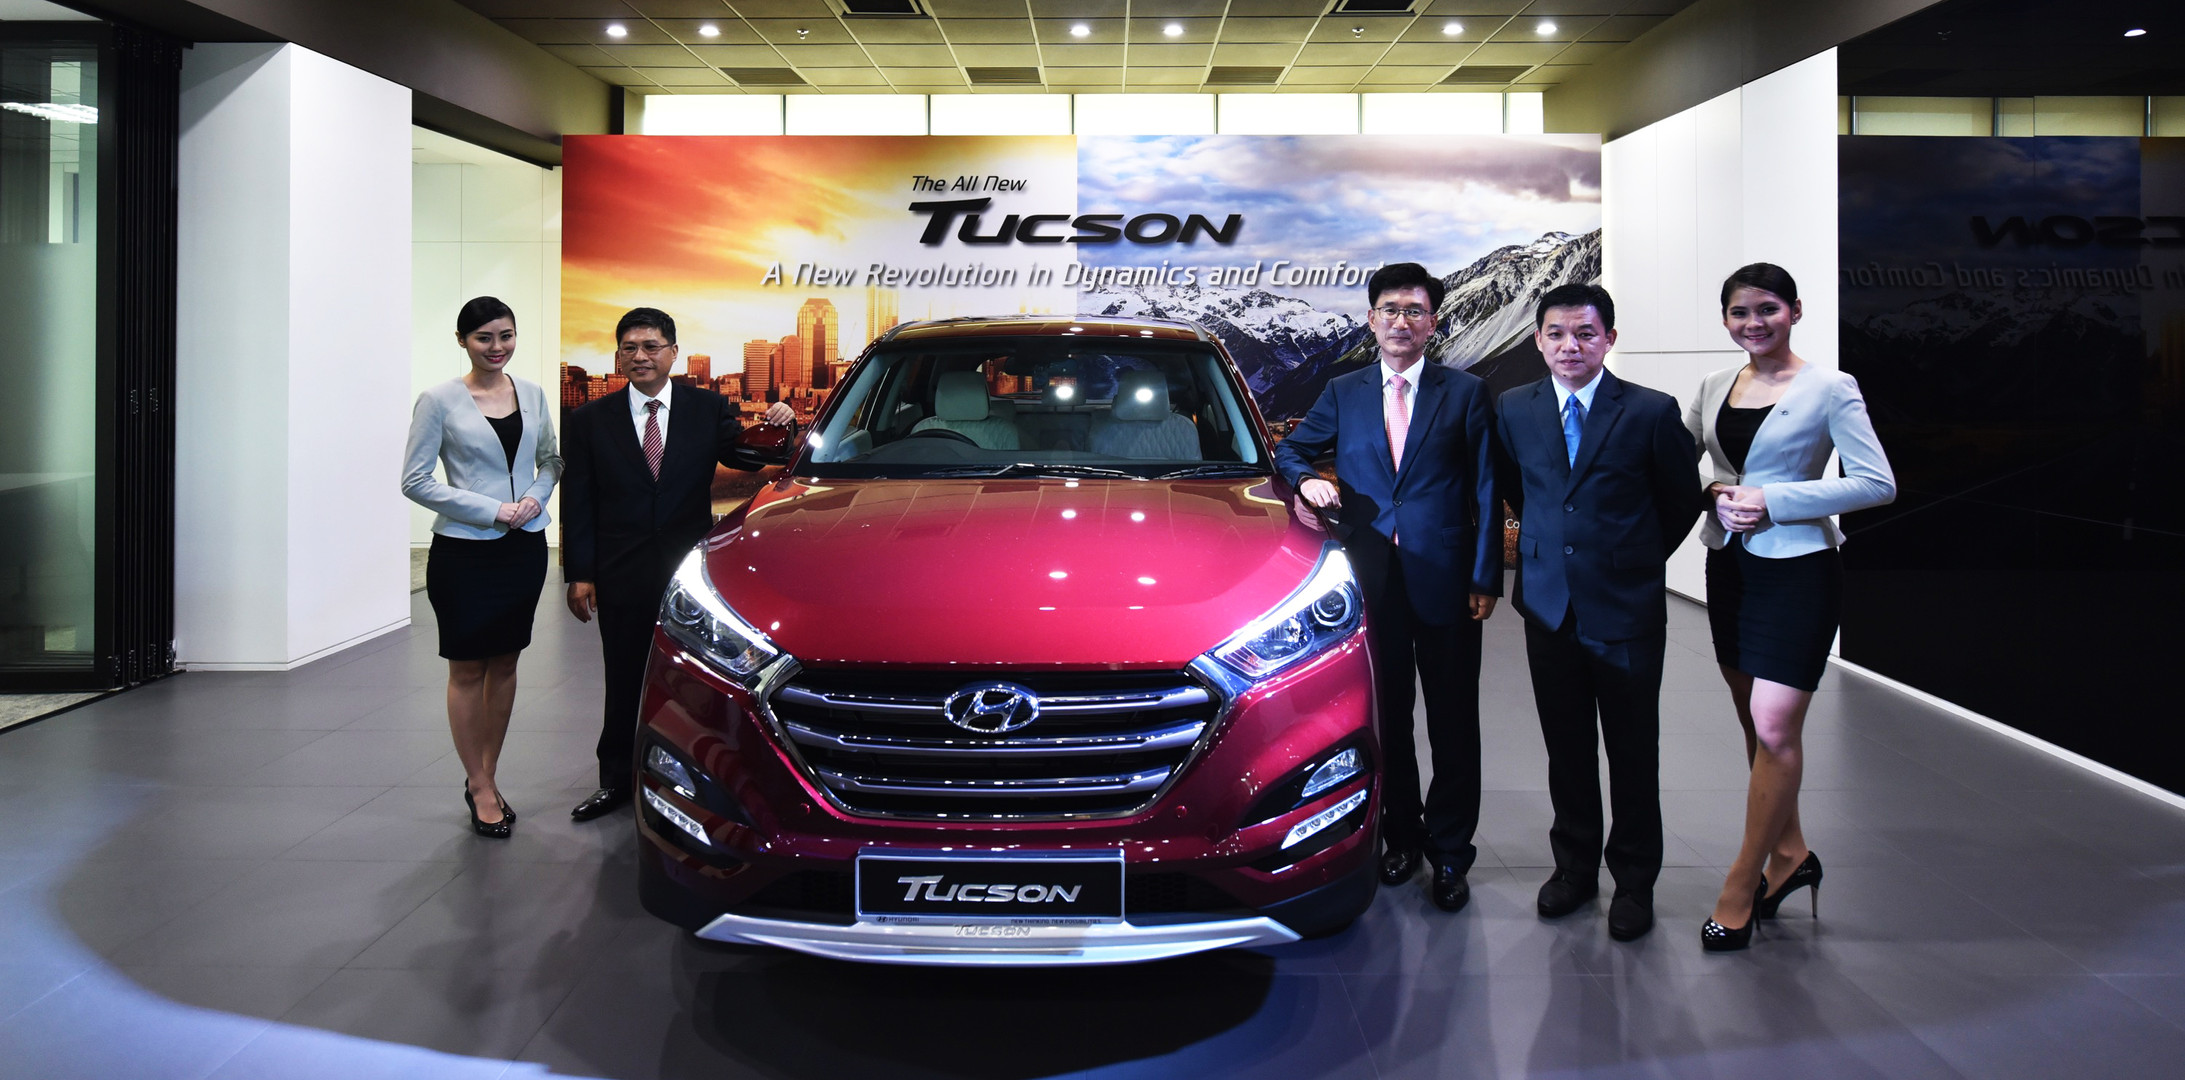 With the Newly Launched All-New Tucson a